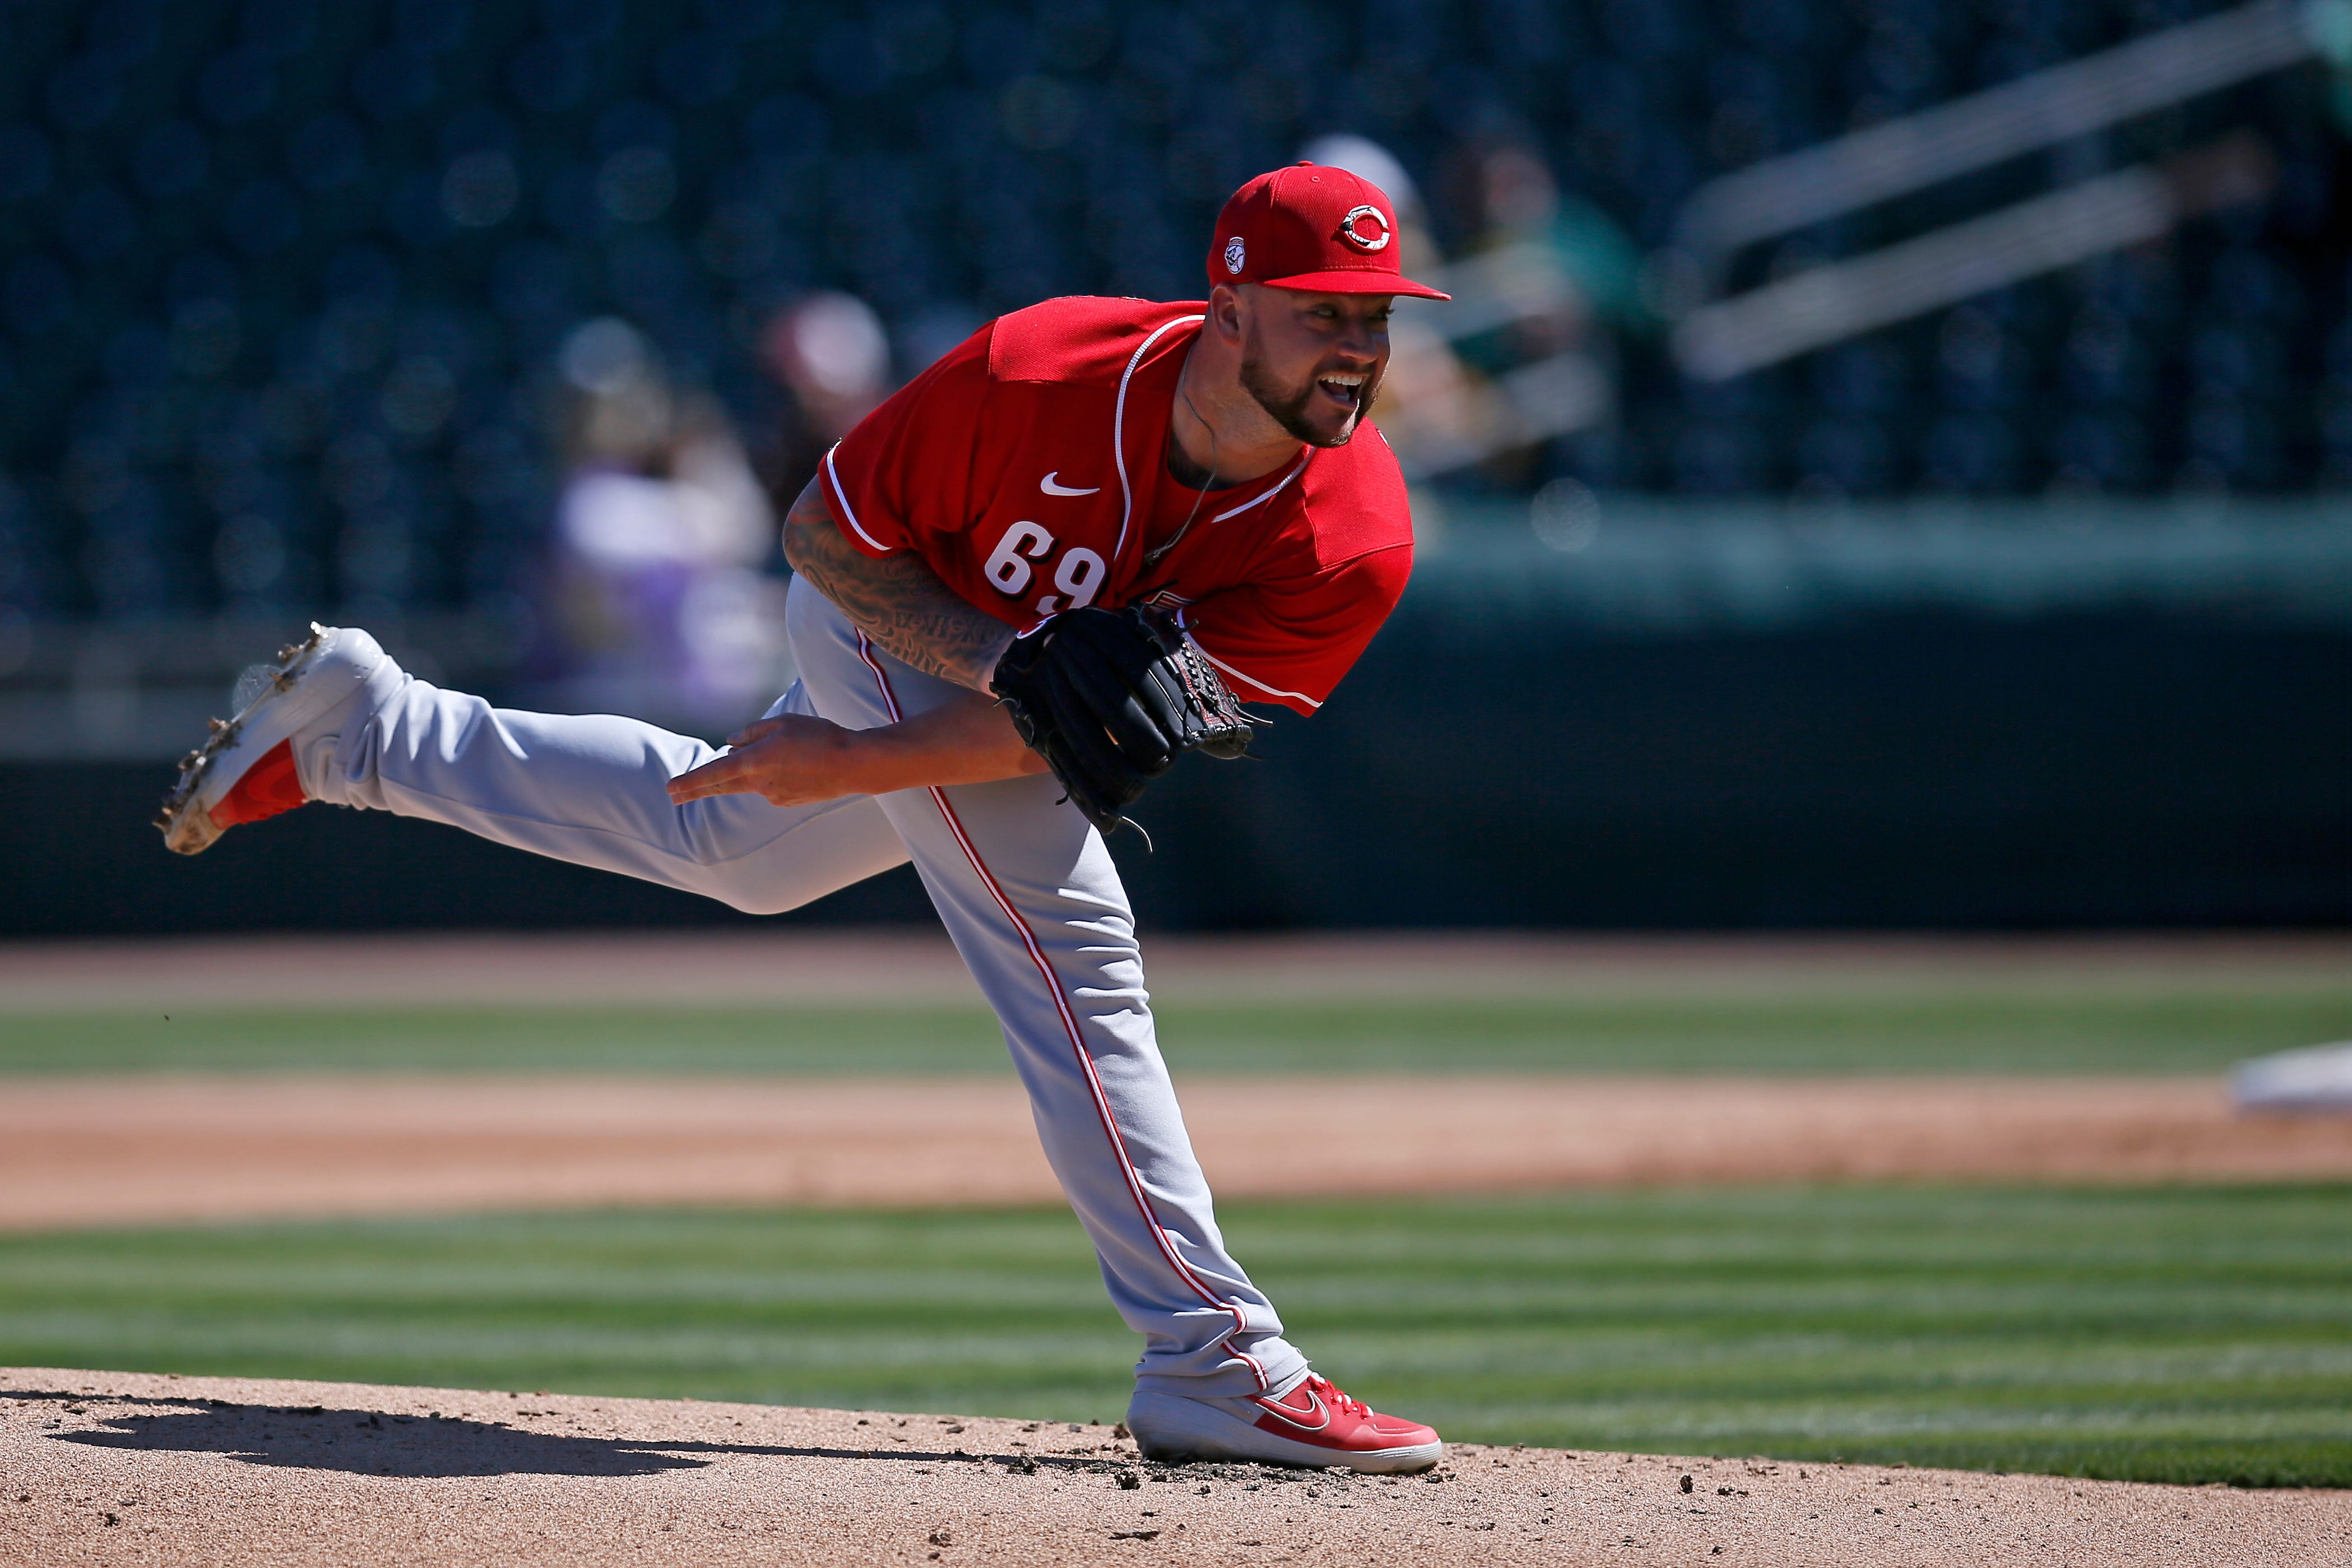 Brandon Finnegan and Alex Blandino stand out as Reds play Mariners